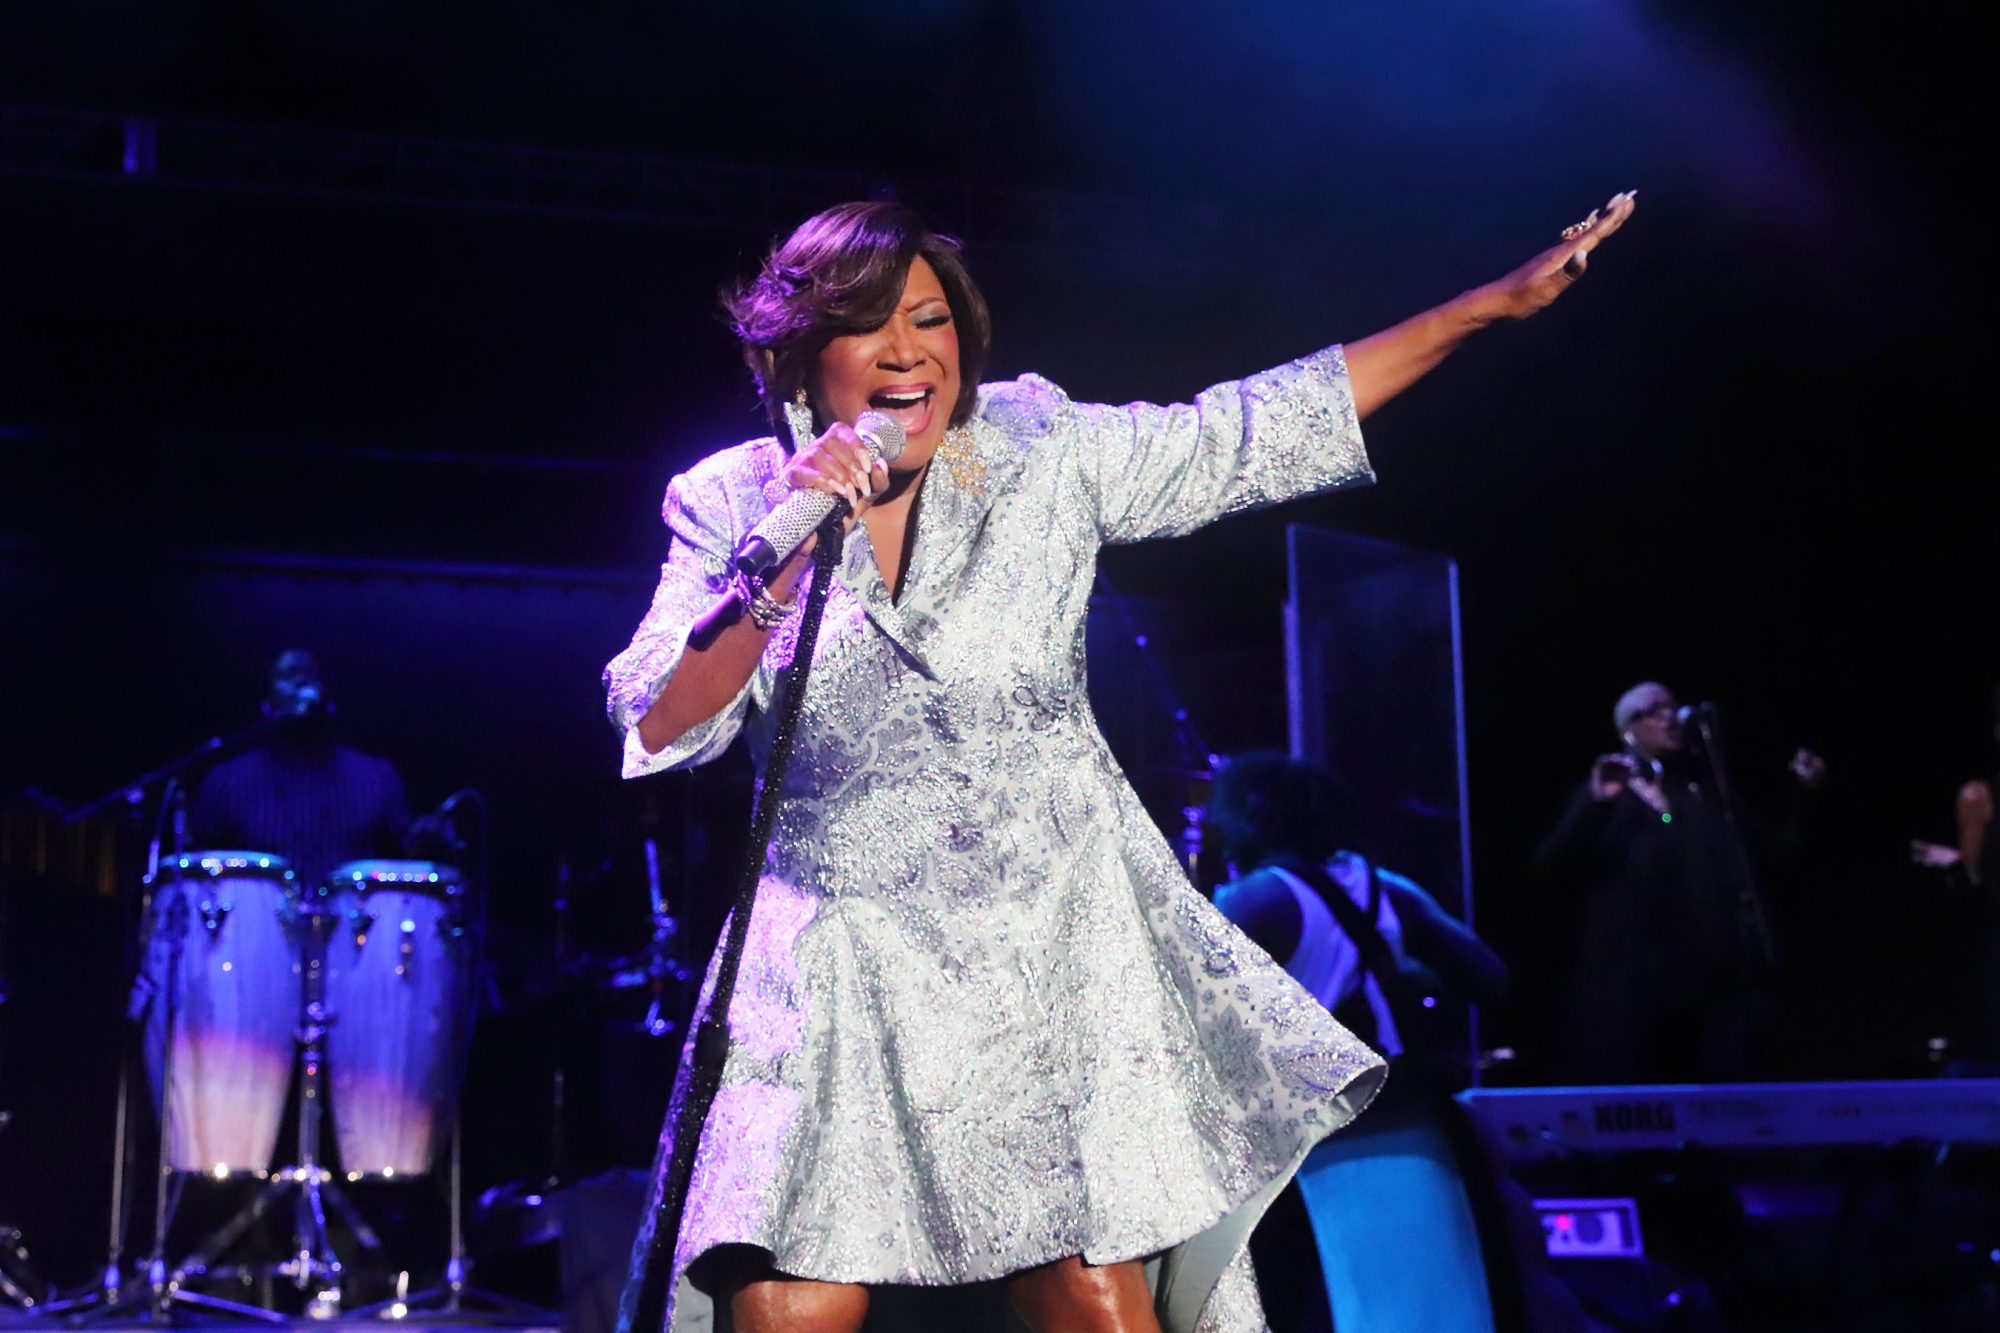 Patti LaBelle Backstage and in Concert at the Dell Music Center